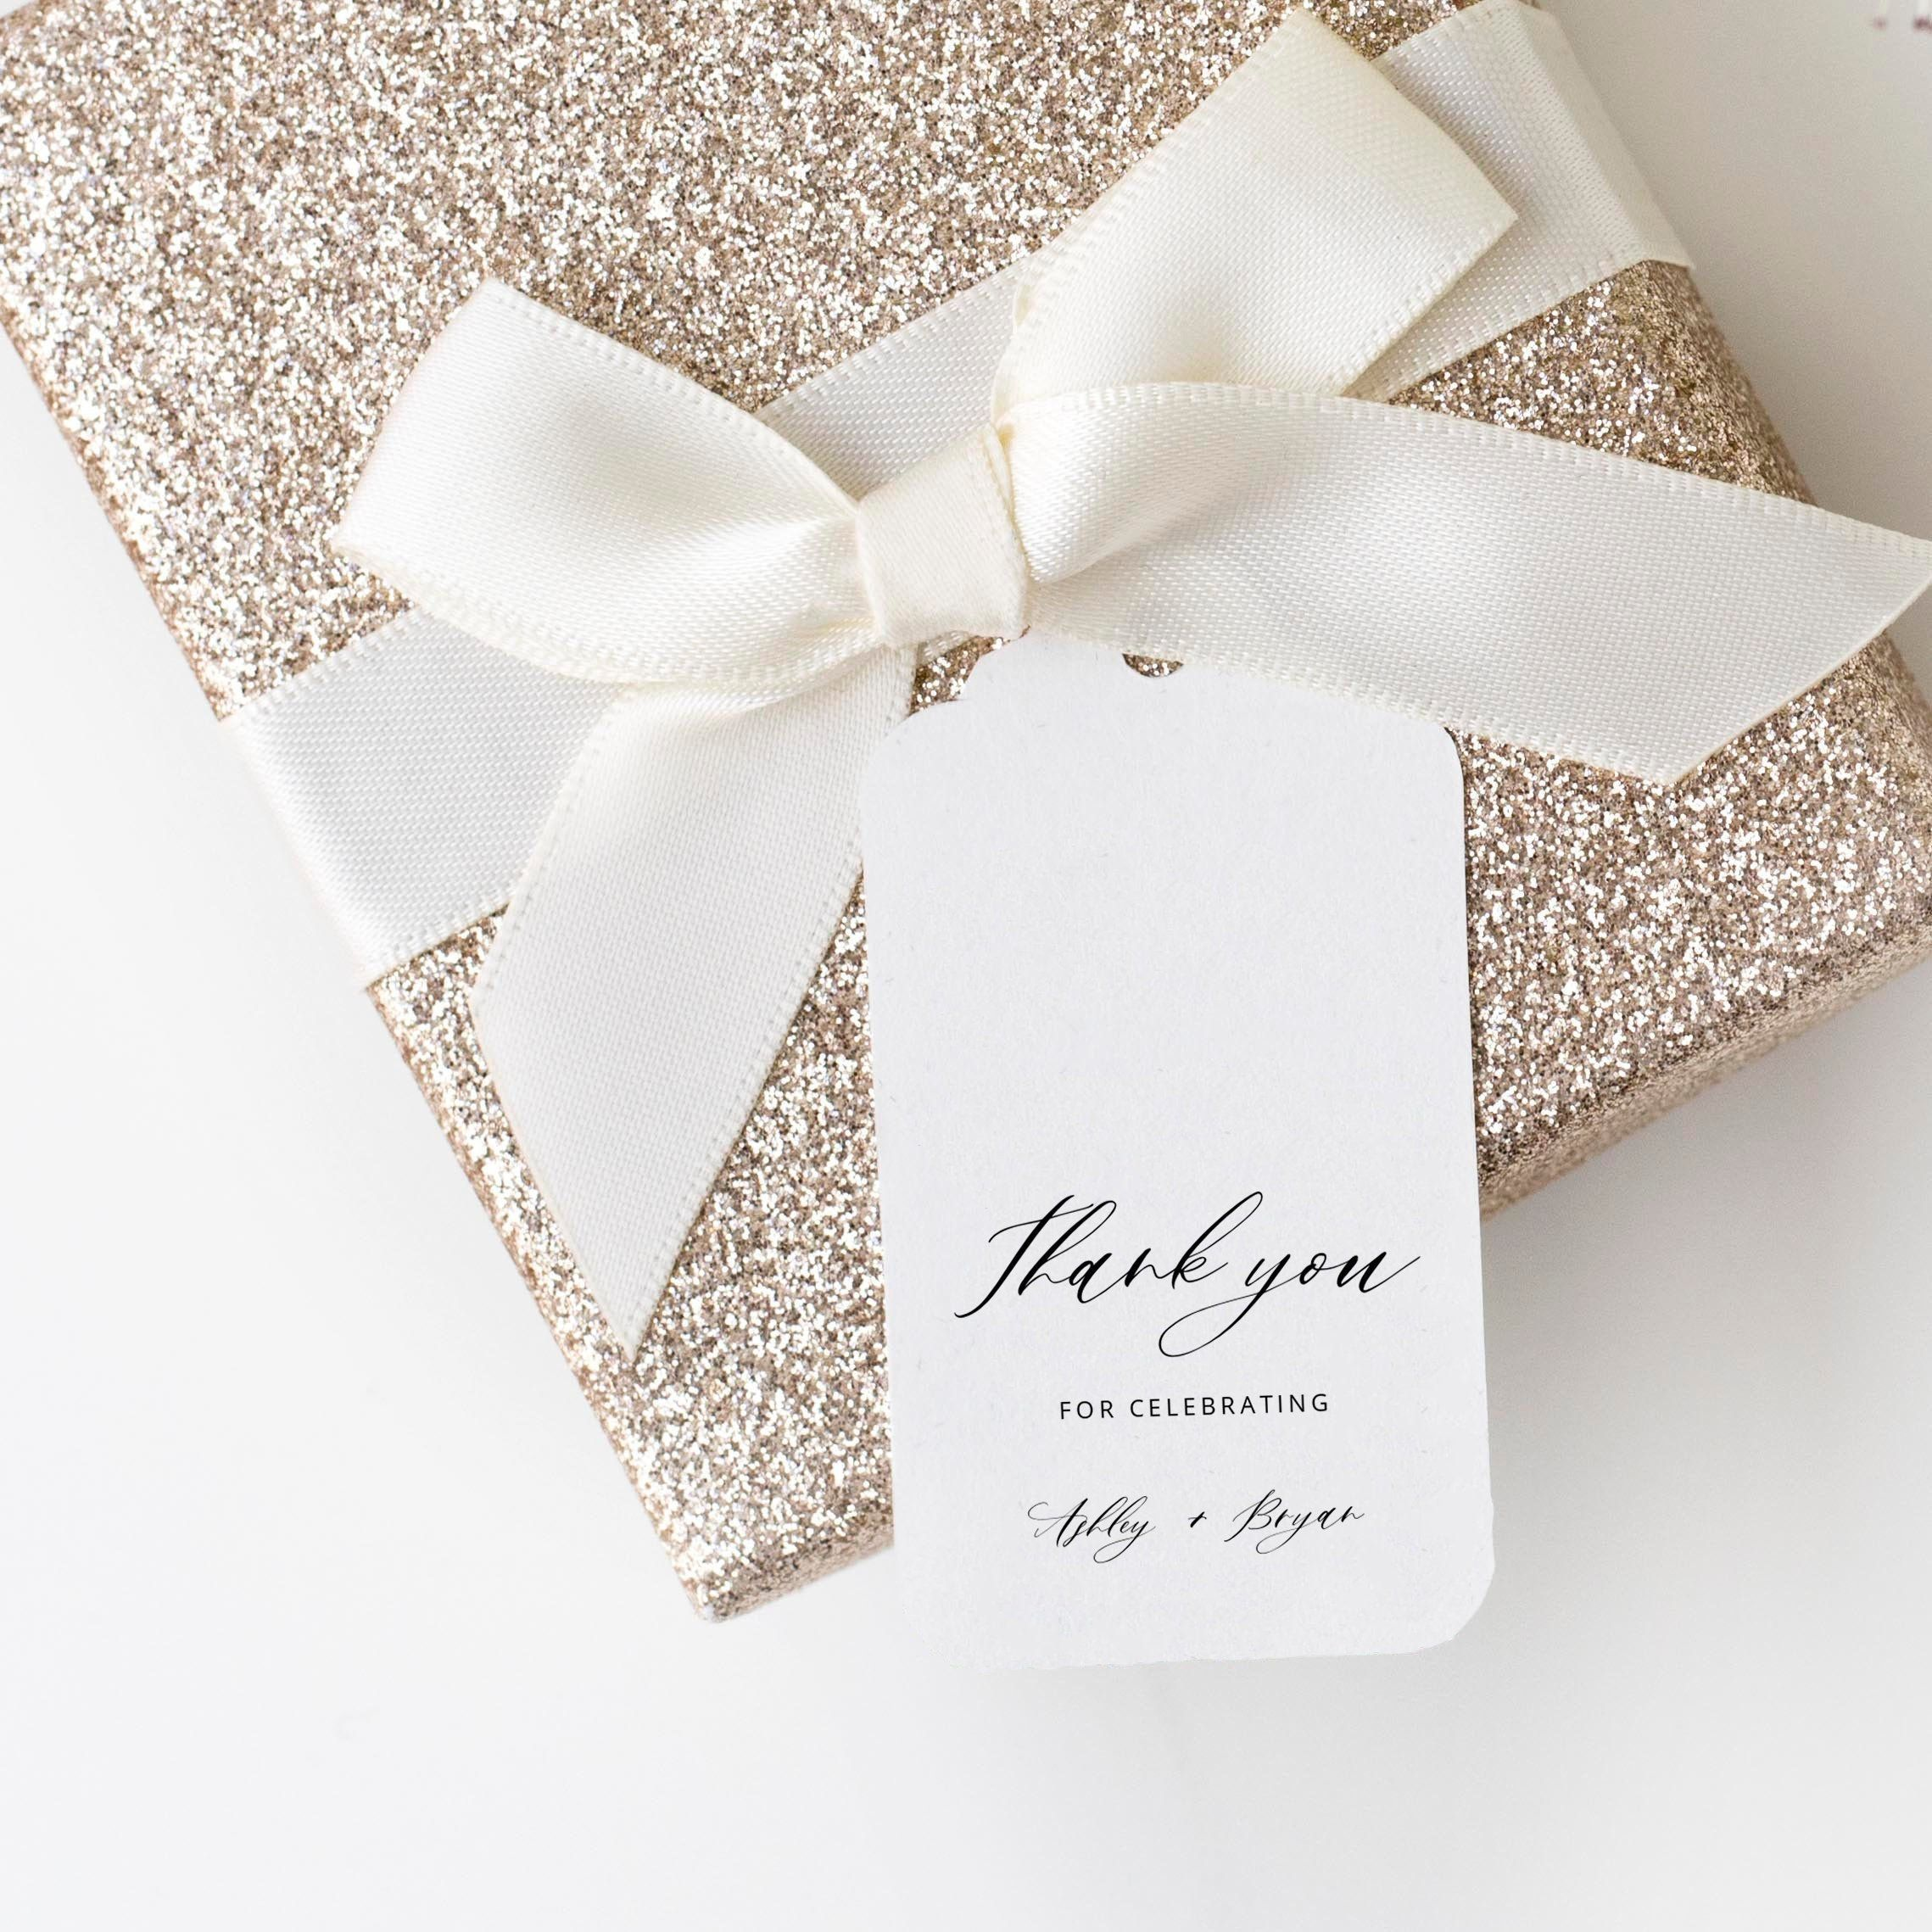 002 Dreaded Wedding Favor Tag Template Highest Quality  Templates Editable Free Party PrintableFull